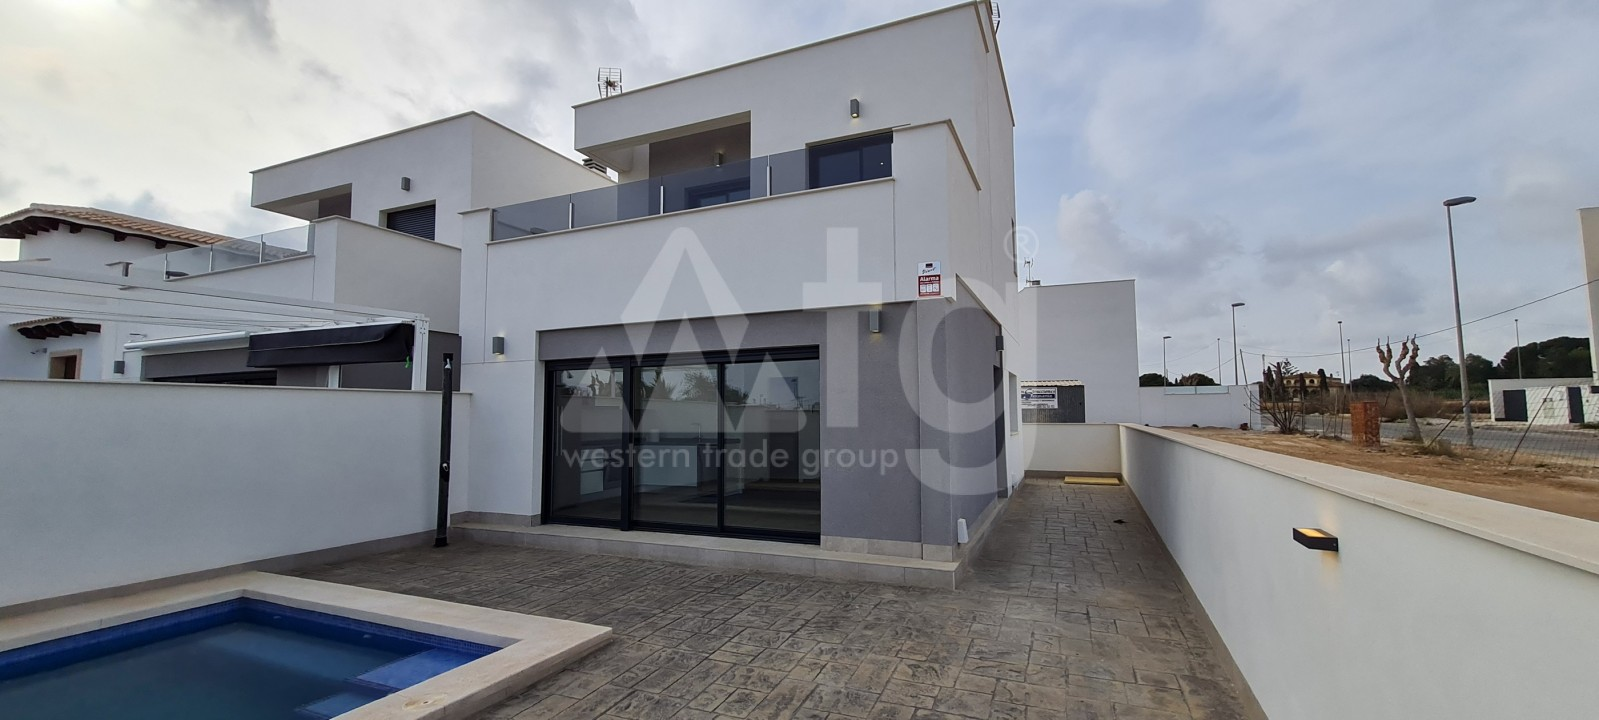 2 bedroom Apartment in Torrevieja  - AG4178 - 1